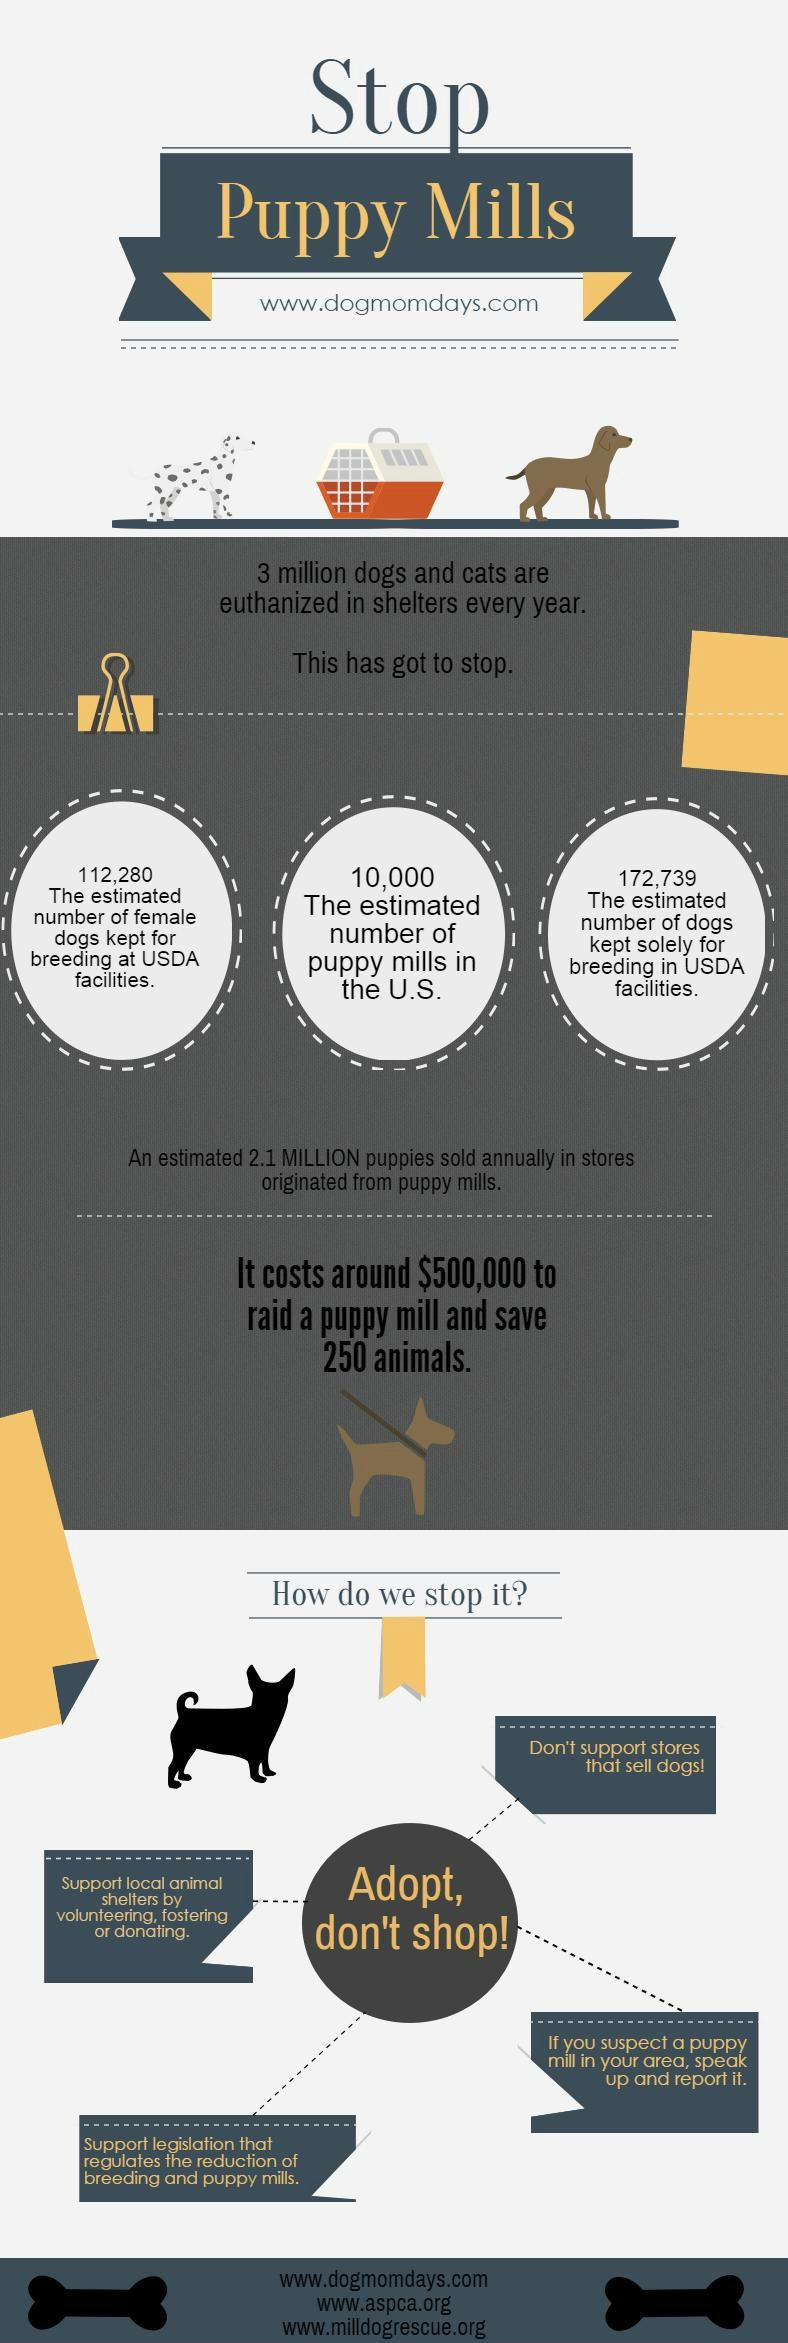 how to start a puppy mill